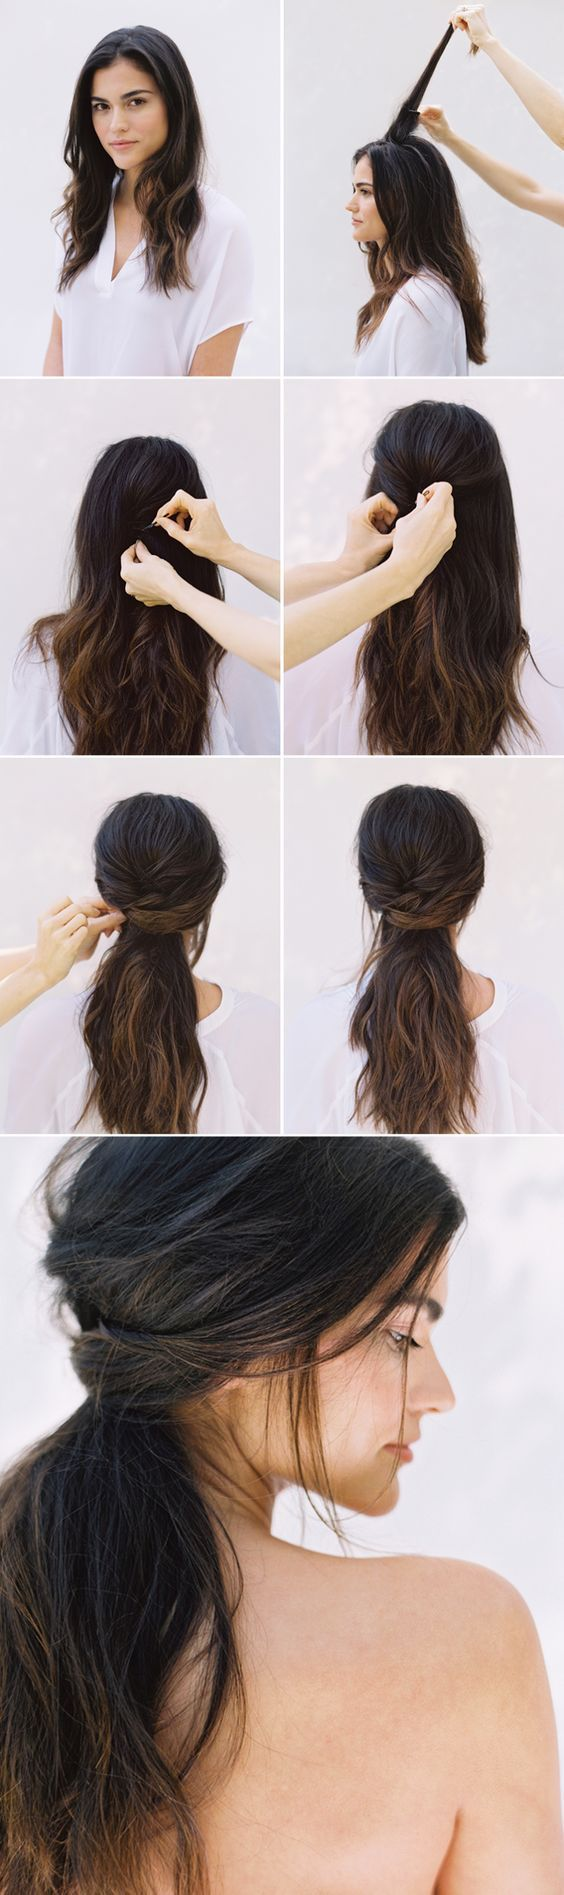 Long Hair Women S Styles Beauty Tips Step By Step Low